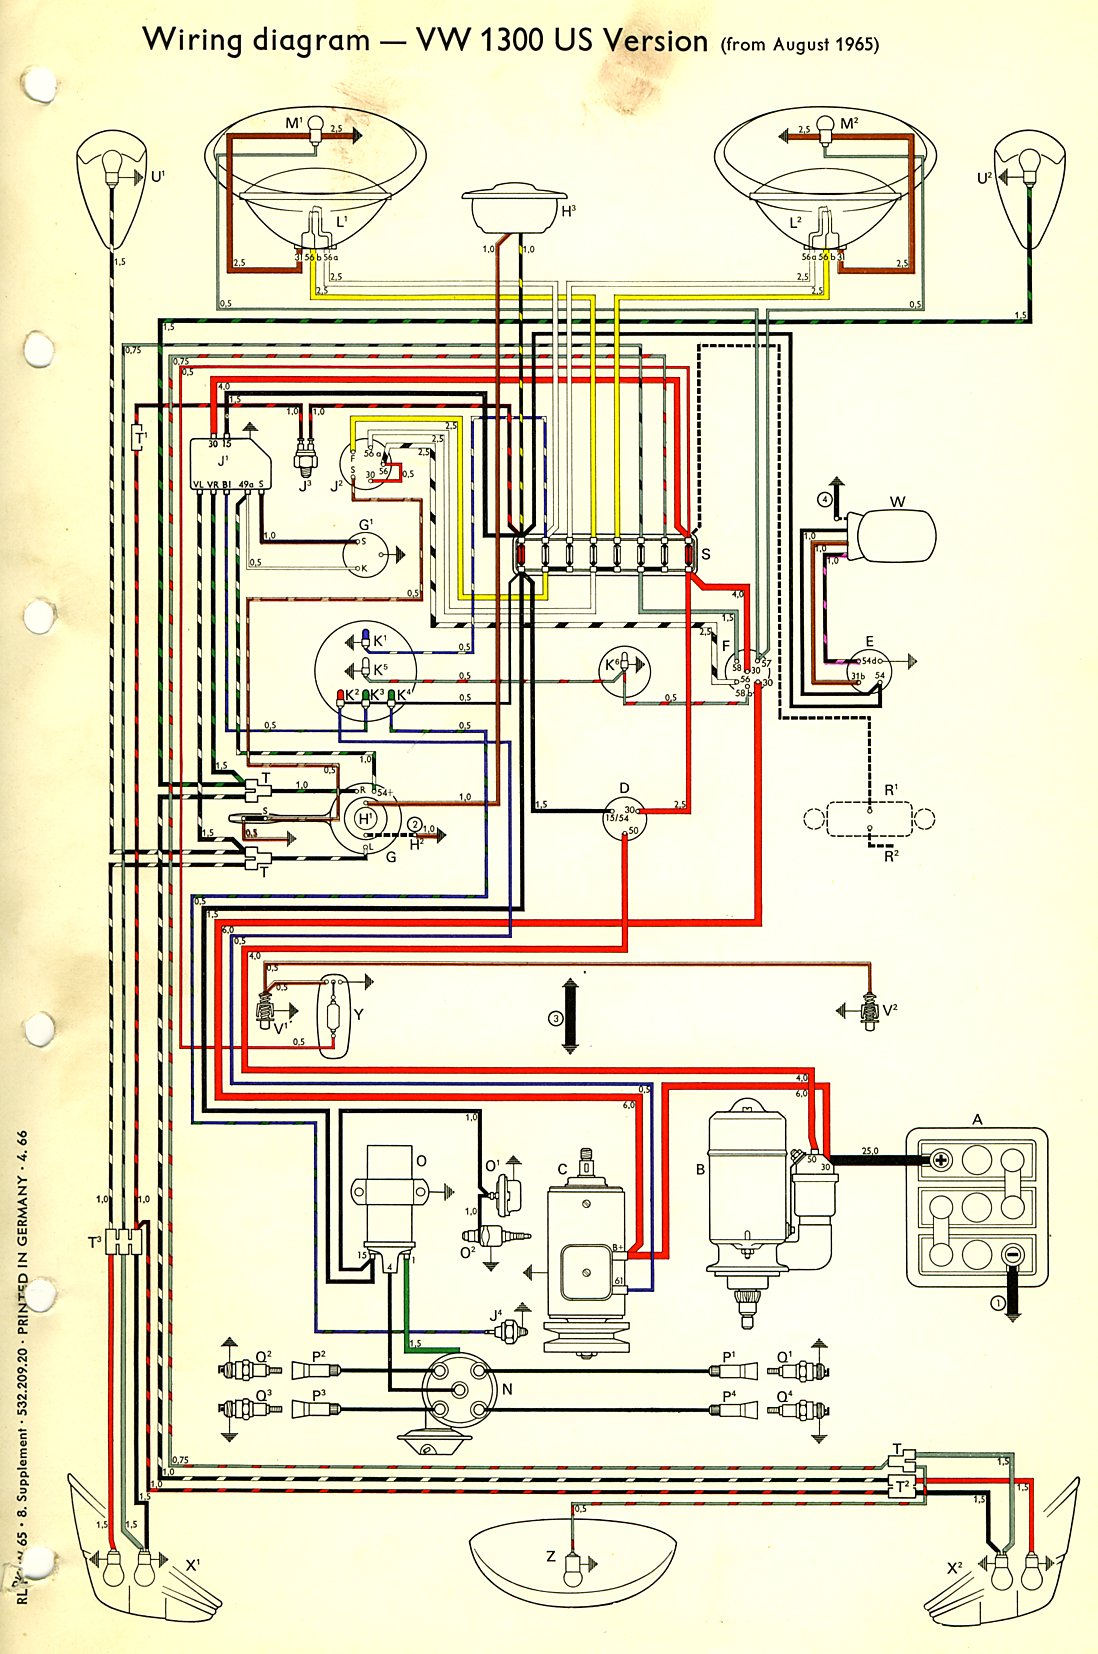 66 Vw Wiring Diagram - Wiring Diagram  Nova Wiring Diagram on 1973 nova wiring diagram, 1965 nova wiring diagram, 1971 nova wiring diagram, 1970 nova wiring diagram, 77 nova wiring diagram, 1966 nova wiring diagram, 1968 nova wiring diagram, 71 nova wiring diagram, 1969 nova wiring diagram, 1963 nova wiring diagram, 1974 nova wiring diagram, 68 nova wiring diagram, 70 nova wiring diagram, 67 nova dash wiring diagram, 1975 nova wiring diagram, 1986 chevy nova wiring diagram, 1972 nova wiring diagram, 72 nova wiring diagram, 1967 nova wiring diagram, 1964 nova wiring diagram,